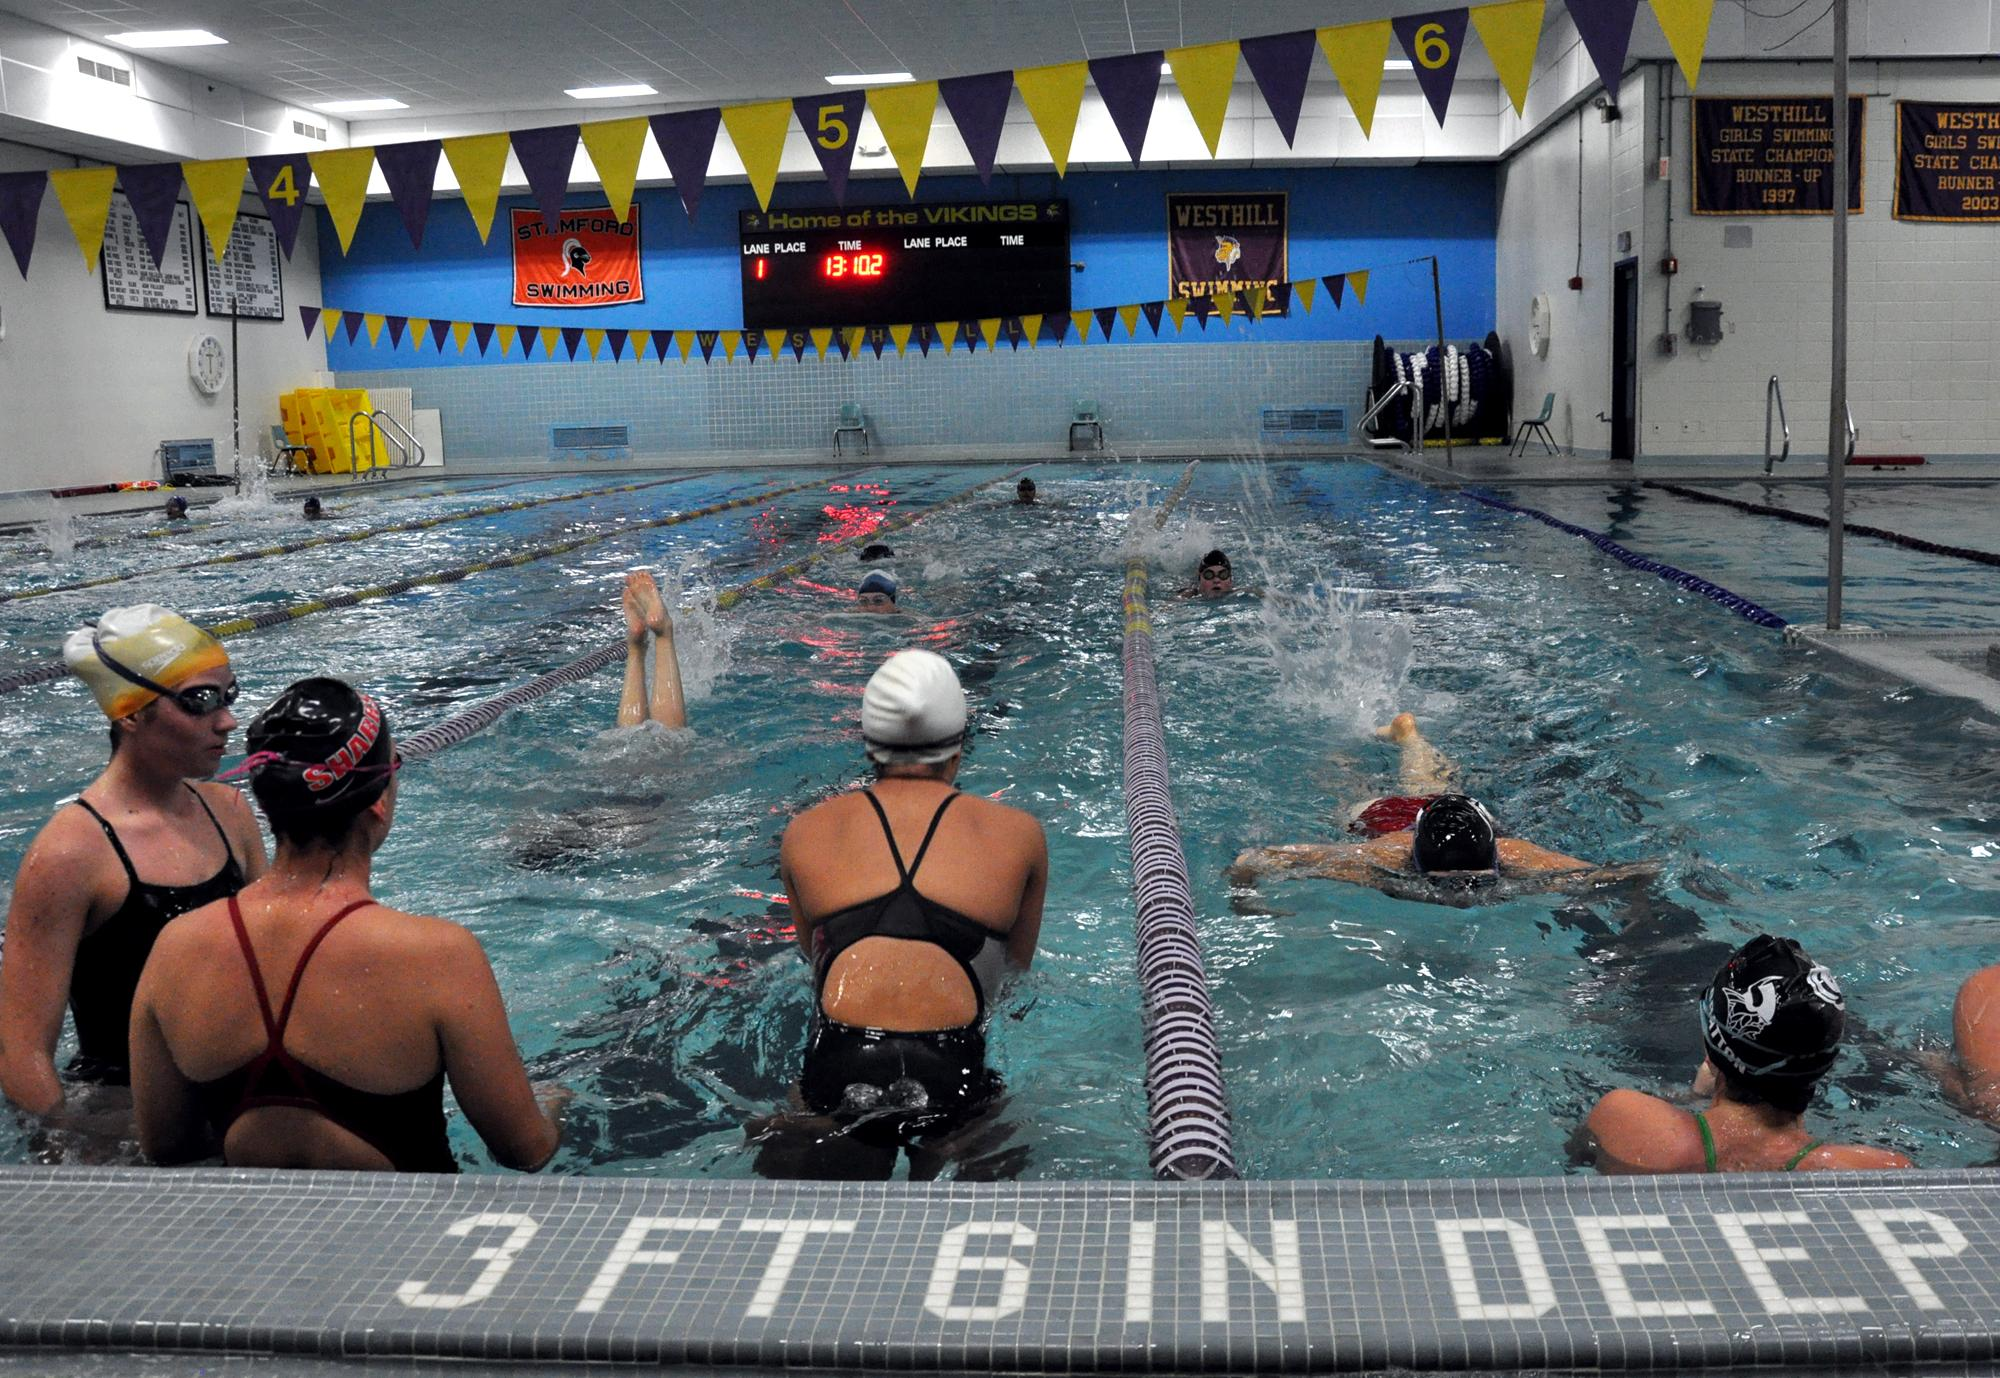 Westhill stamford girls swim team parents at odds over coach s suspension stamfordadvocate Tong high school swimming pool